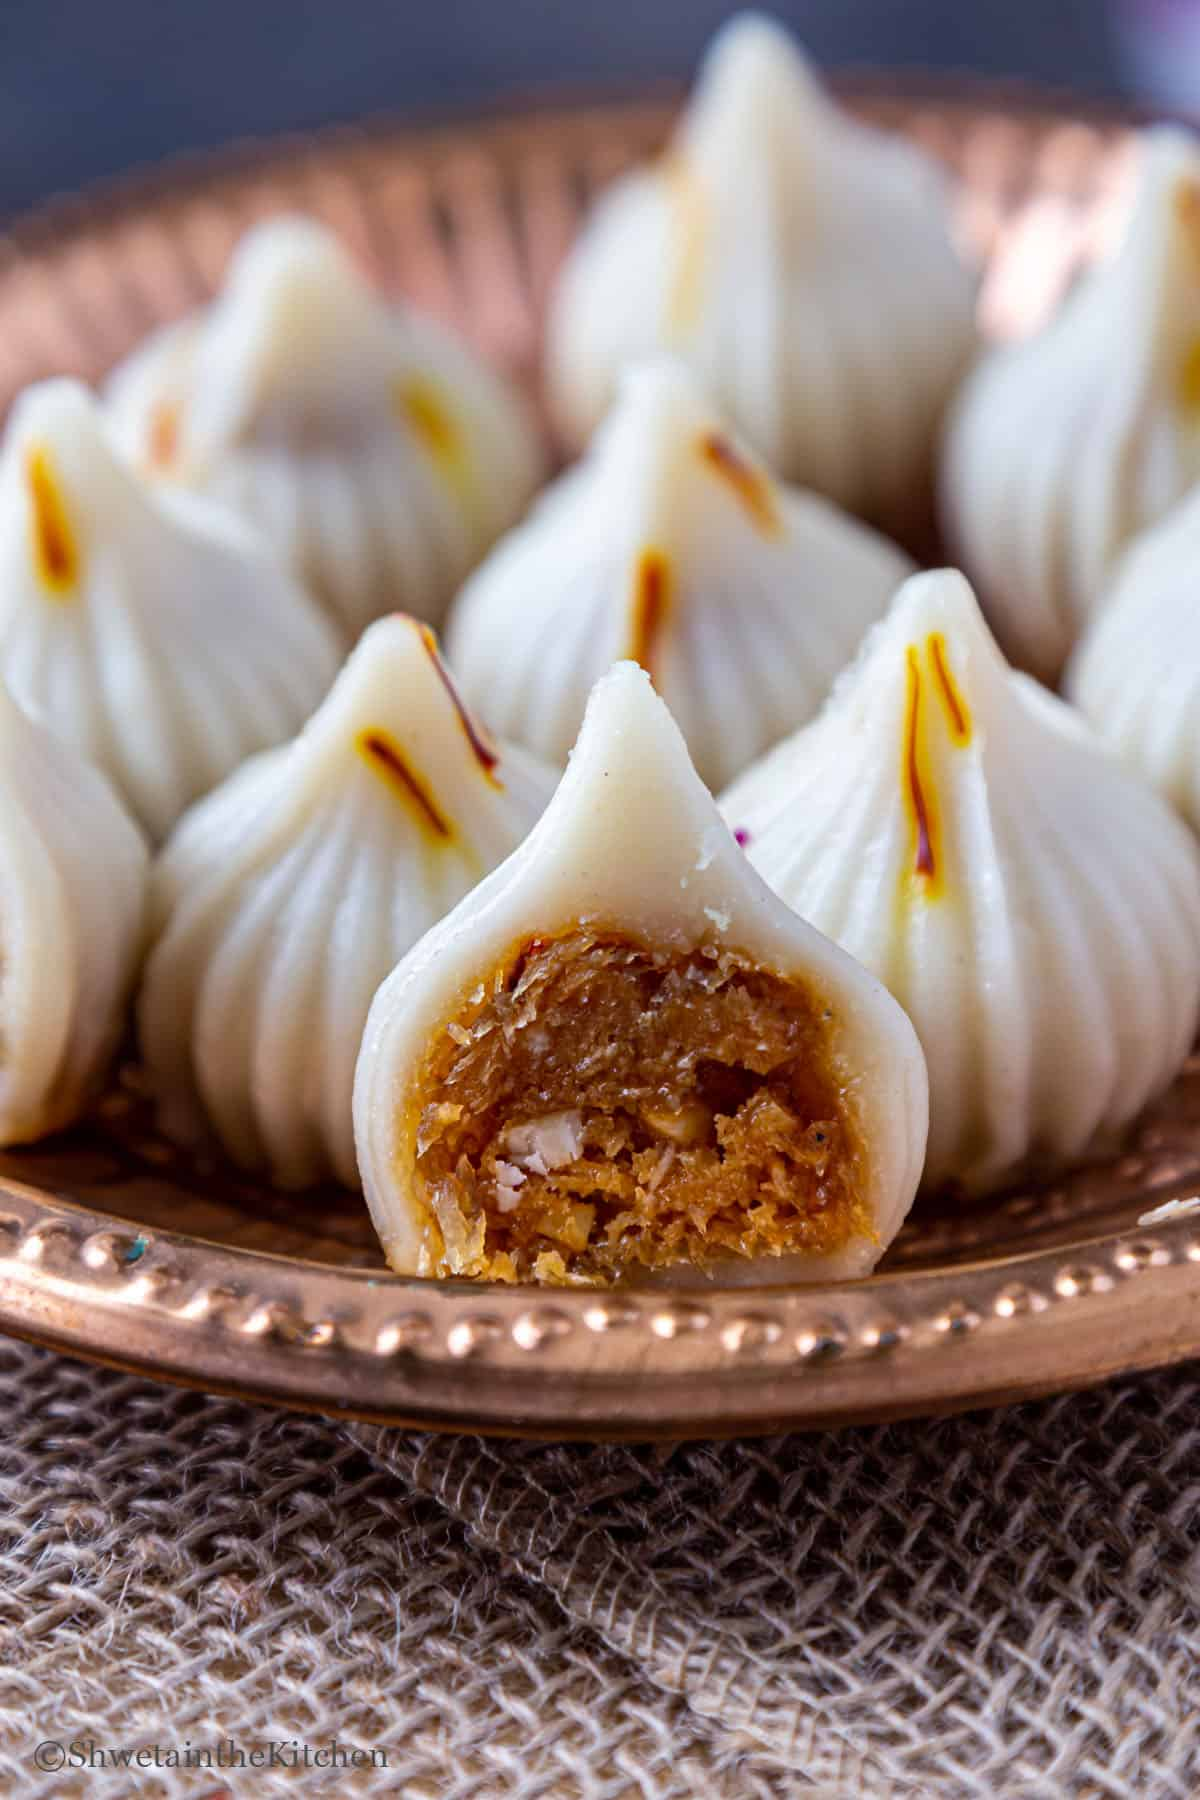 Modak halved to show filling inside and placed on plate full of modak